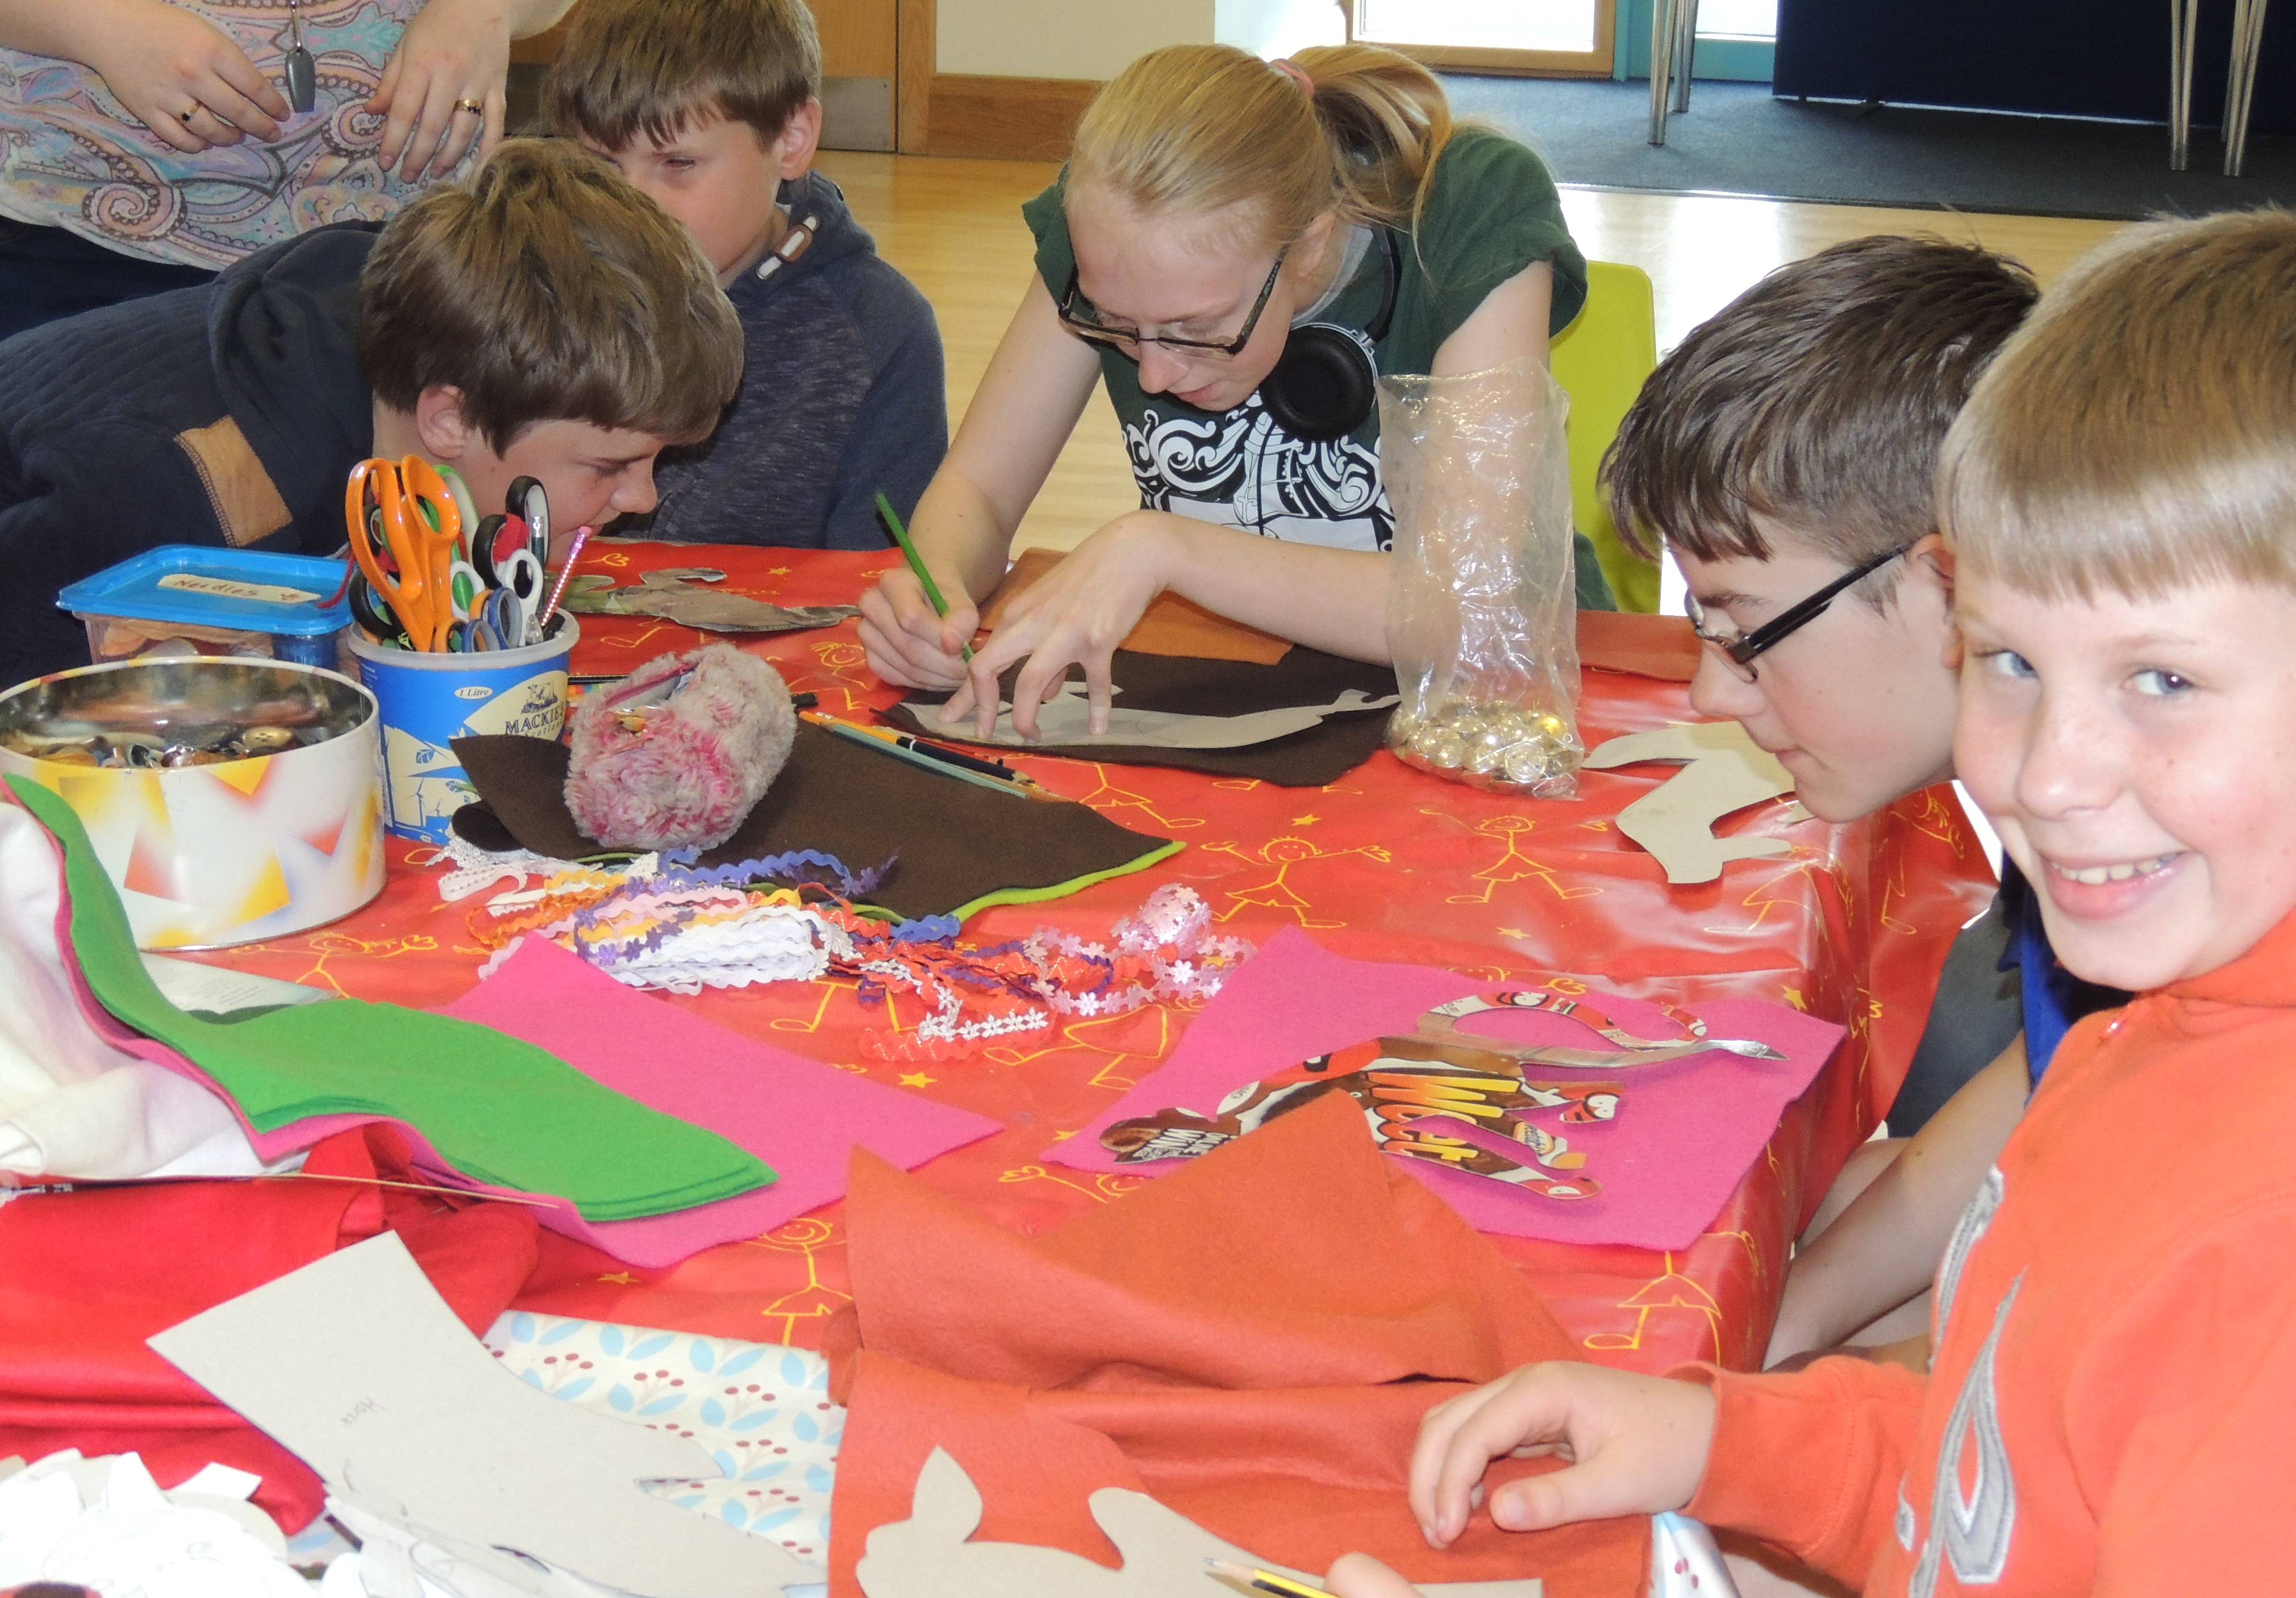 Image showing a group of young people doing arts and crafts